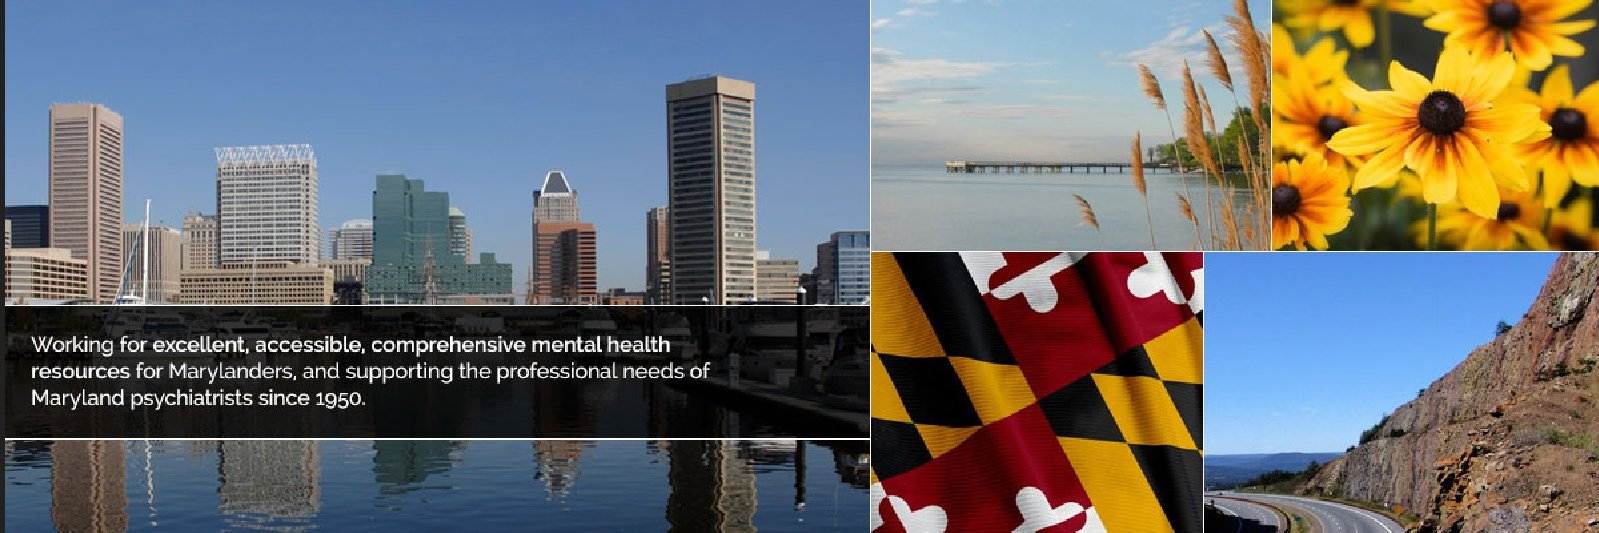 NAMI Baltimore is offering online access to support groups:  Family Support Group :bit.ly/2XfPzNZ Conne… twitter.com/i/web/status/1…